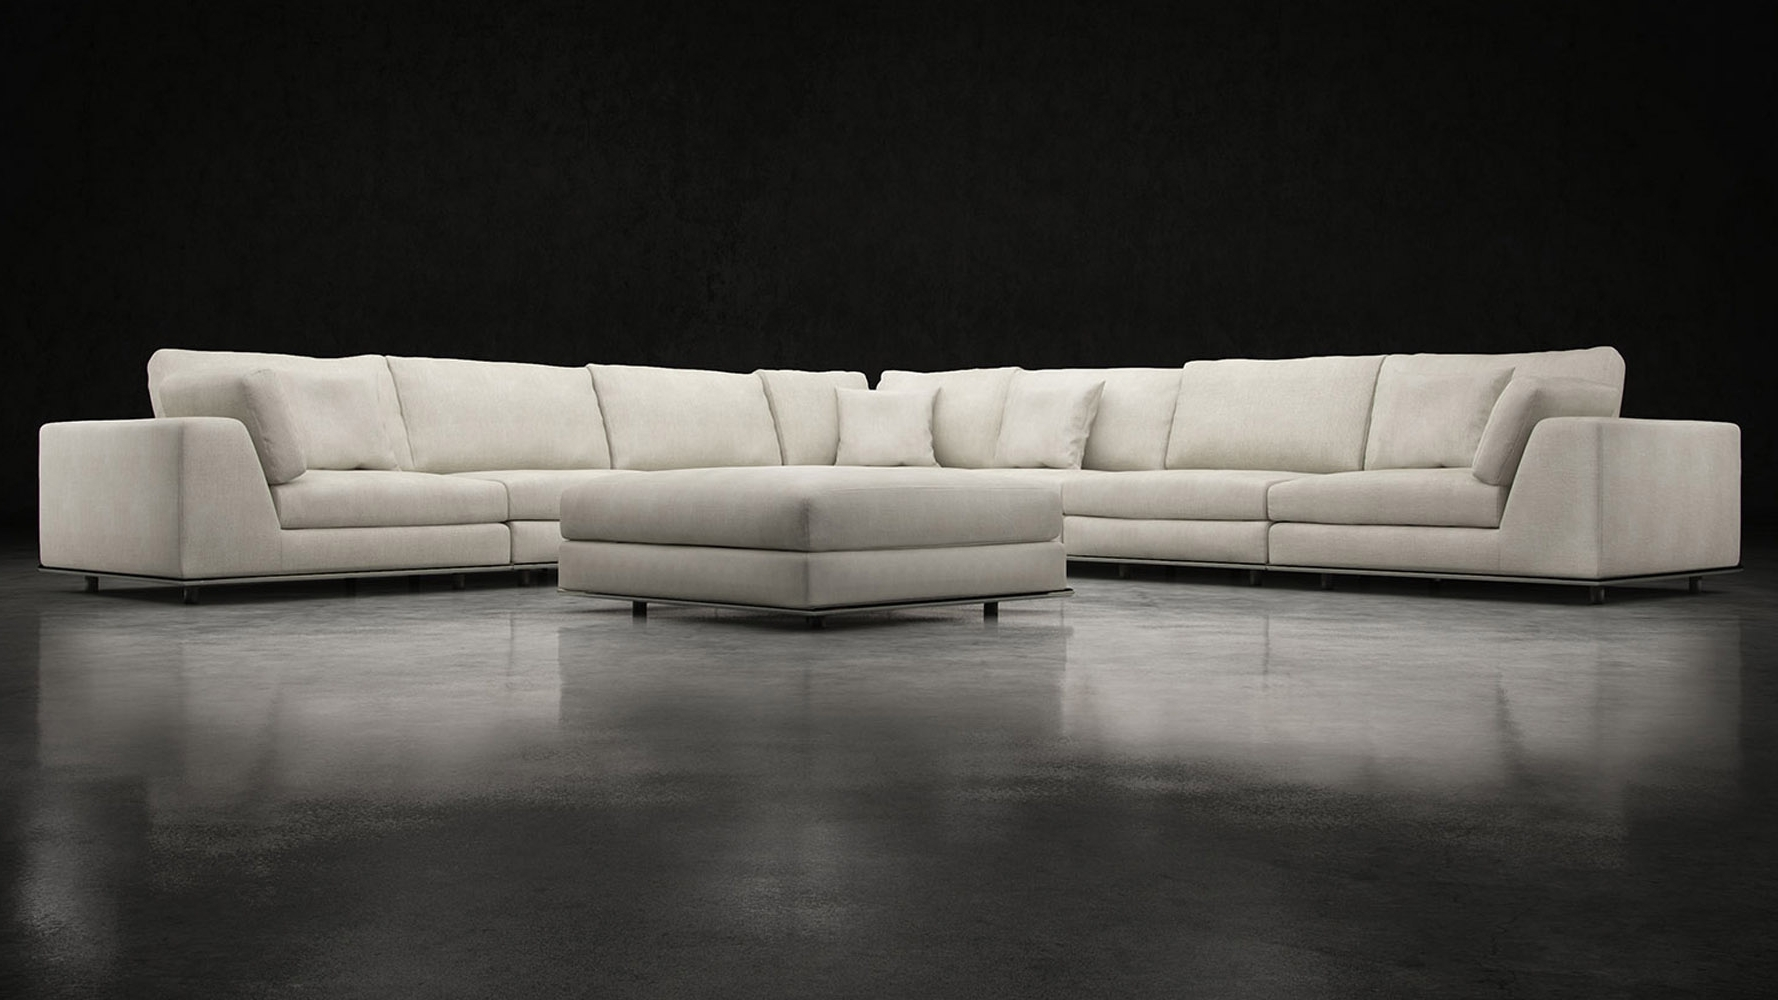 Furniture : 5060 Recliner Sectional Sofa Costco $699 Corner Couch With Well Known Joining Hardware Sectional Sofas (View 5 of 20)